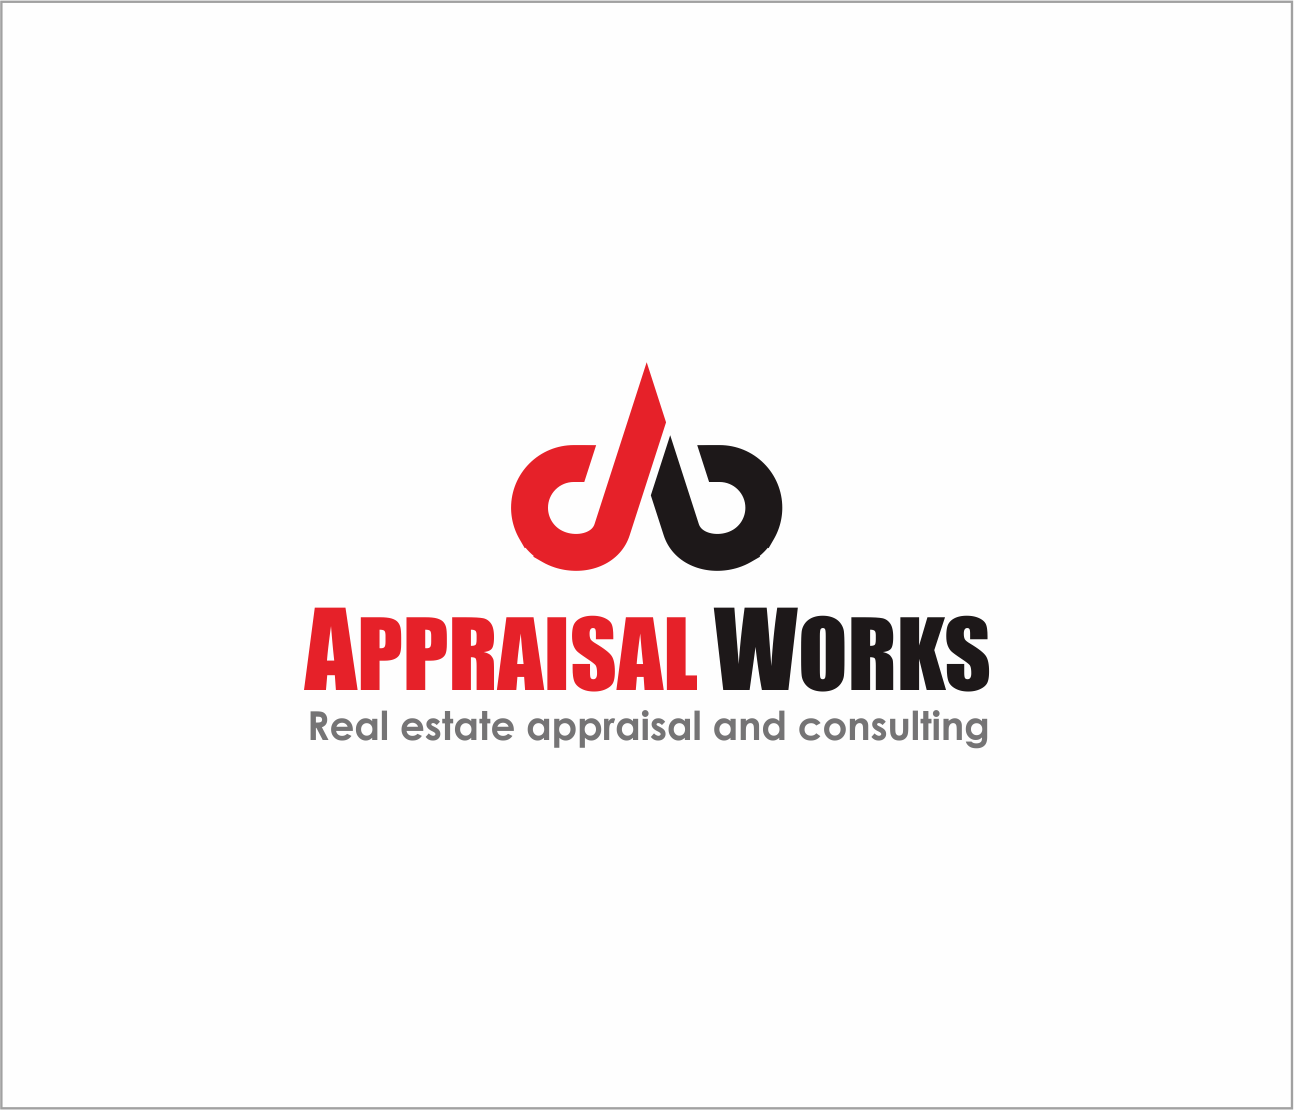 Logo Design by Armada Jamaluddin - Entry No. 240 in the Logo Design Contest Appraisal Works Logo Design.